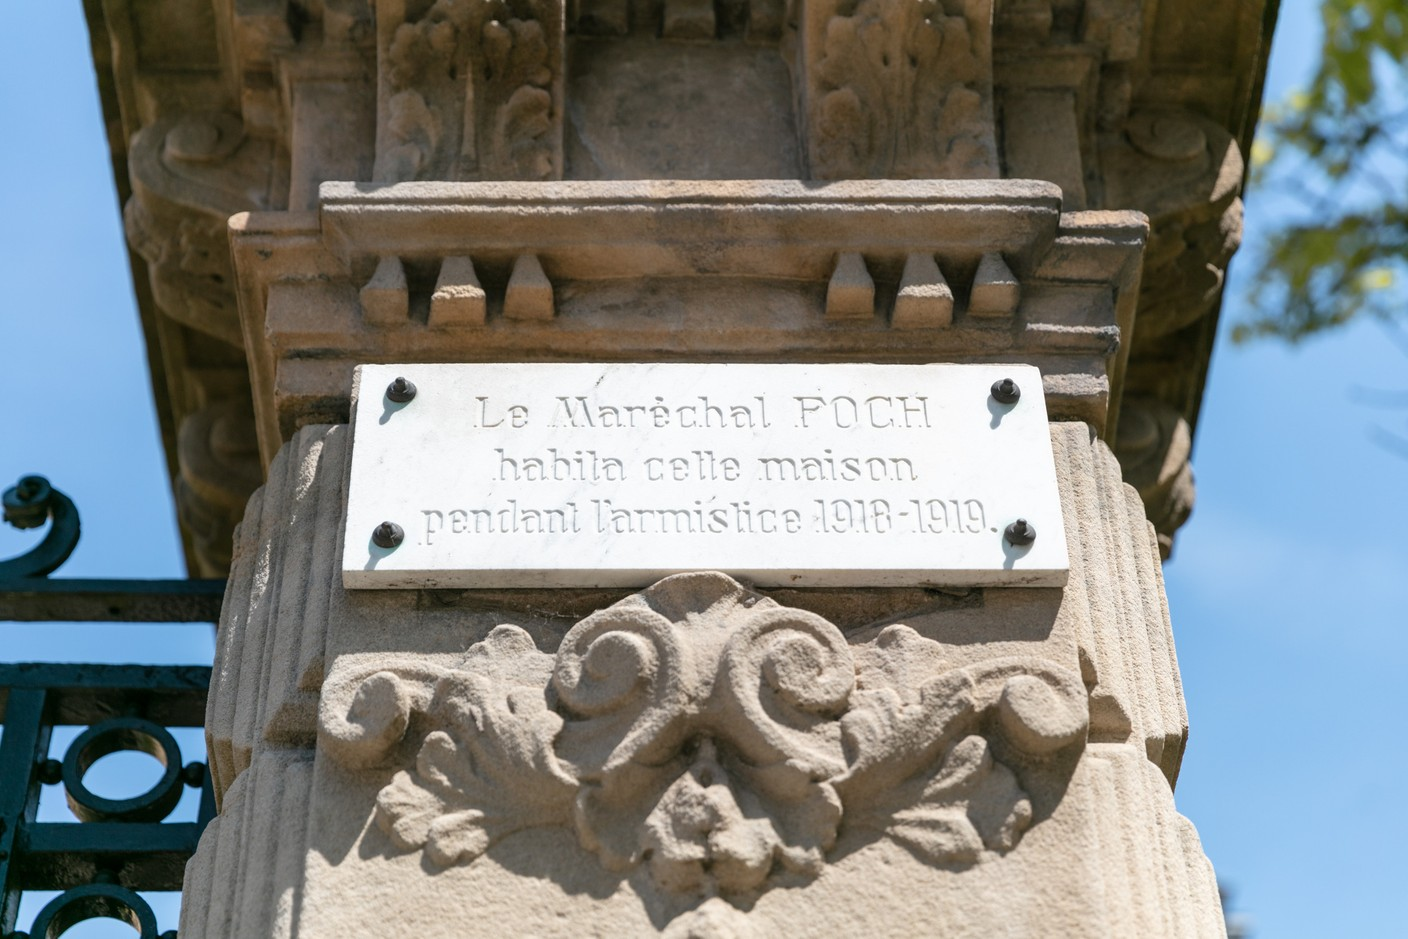 The plaque near the gate referencing Marshall Foch Romain Gamba/Maison Moderne